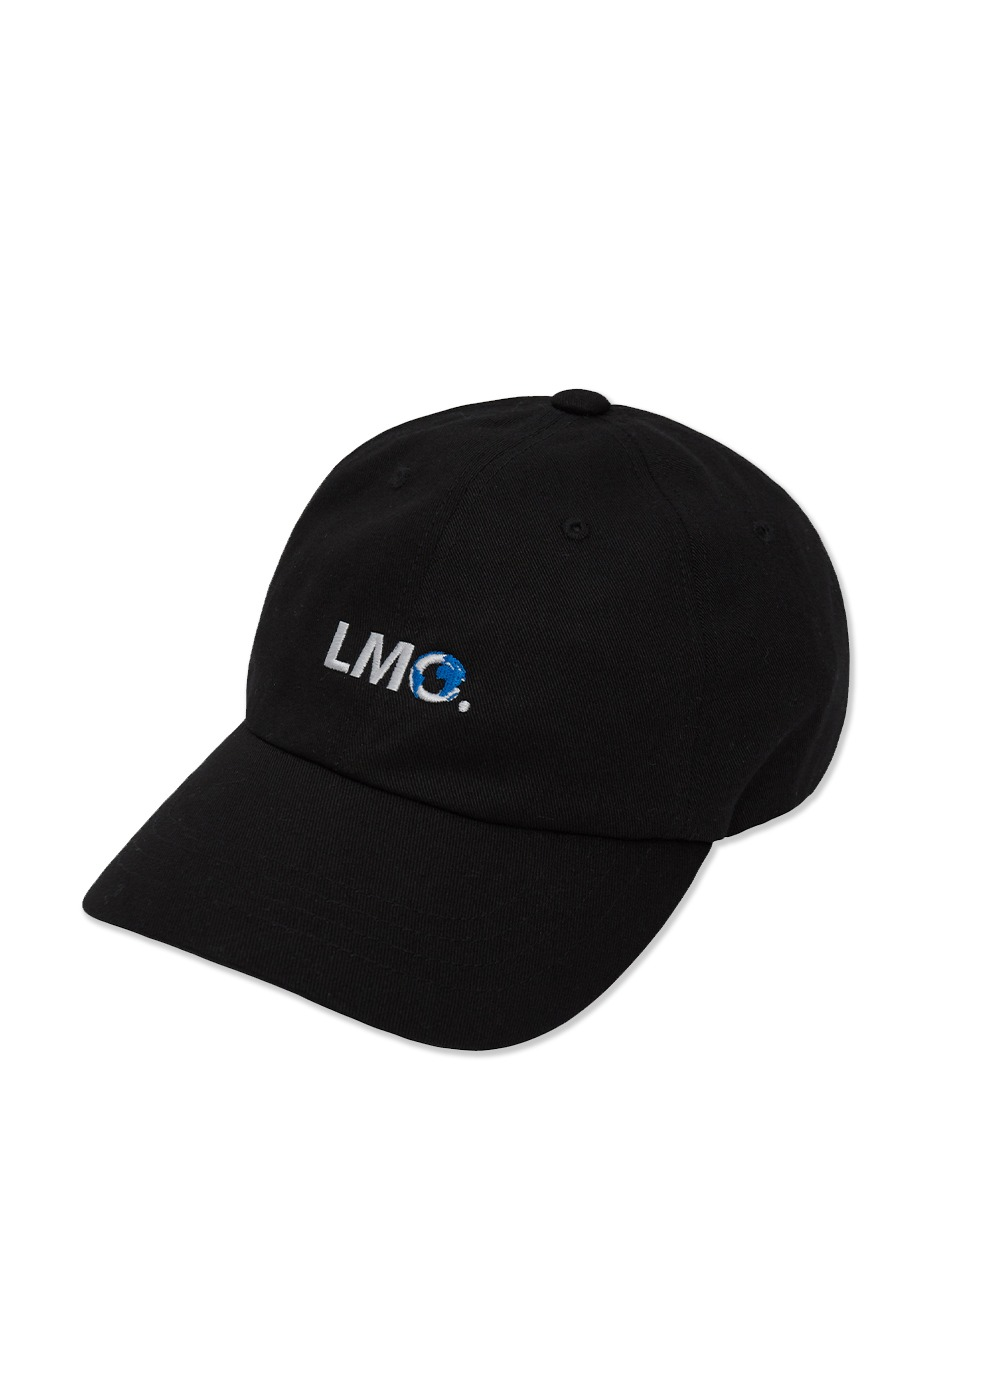 LMC EARTH LOGO 6 PANEL CAP black